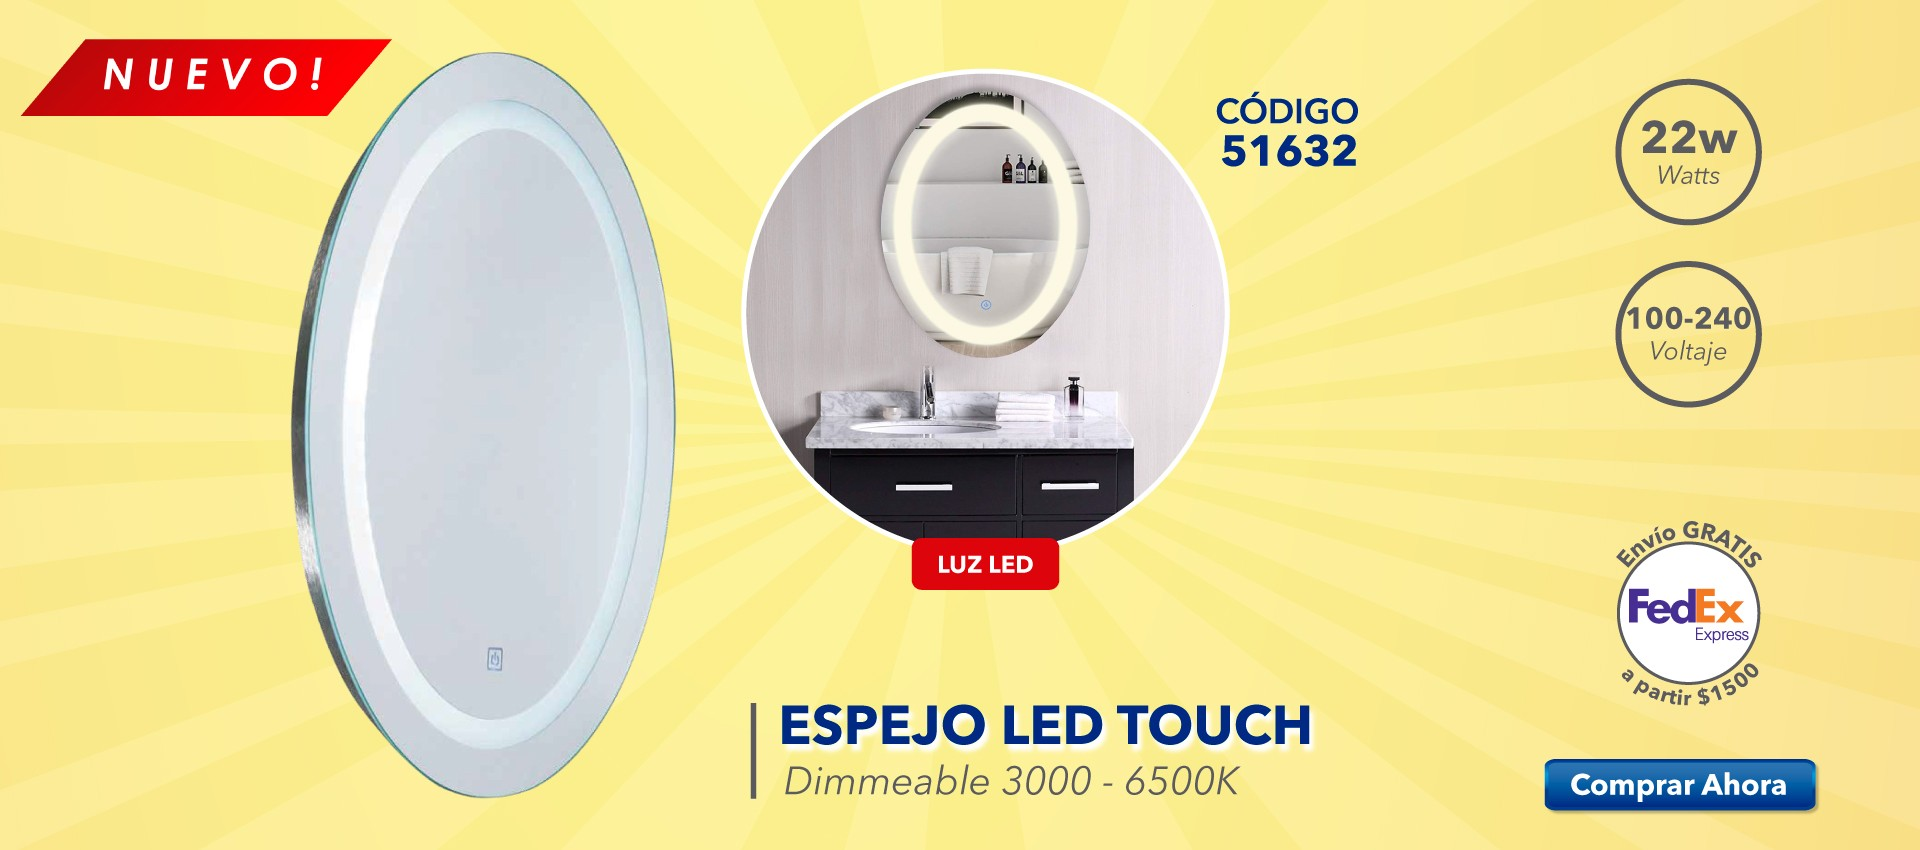 Espéjo LED Touch